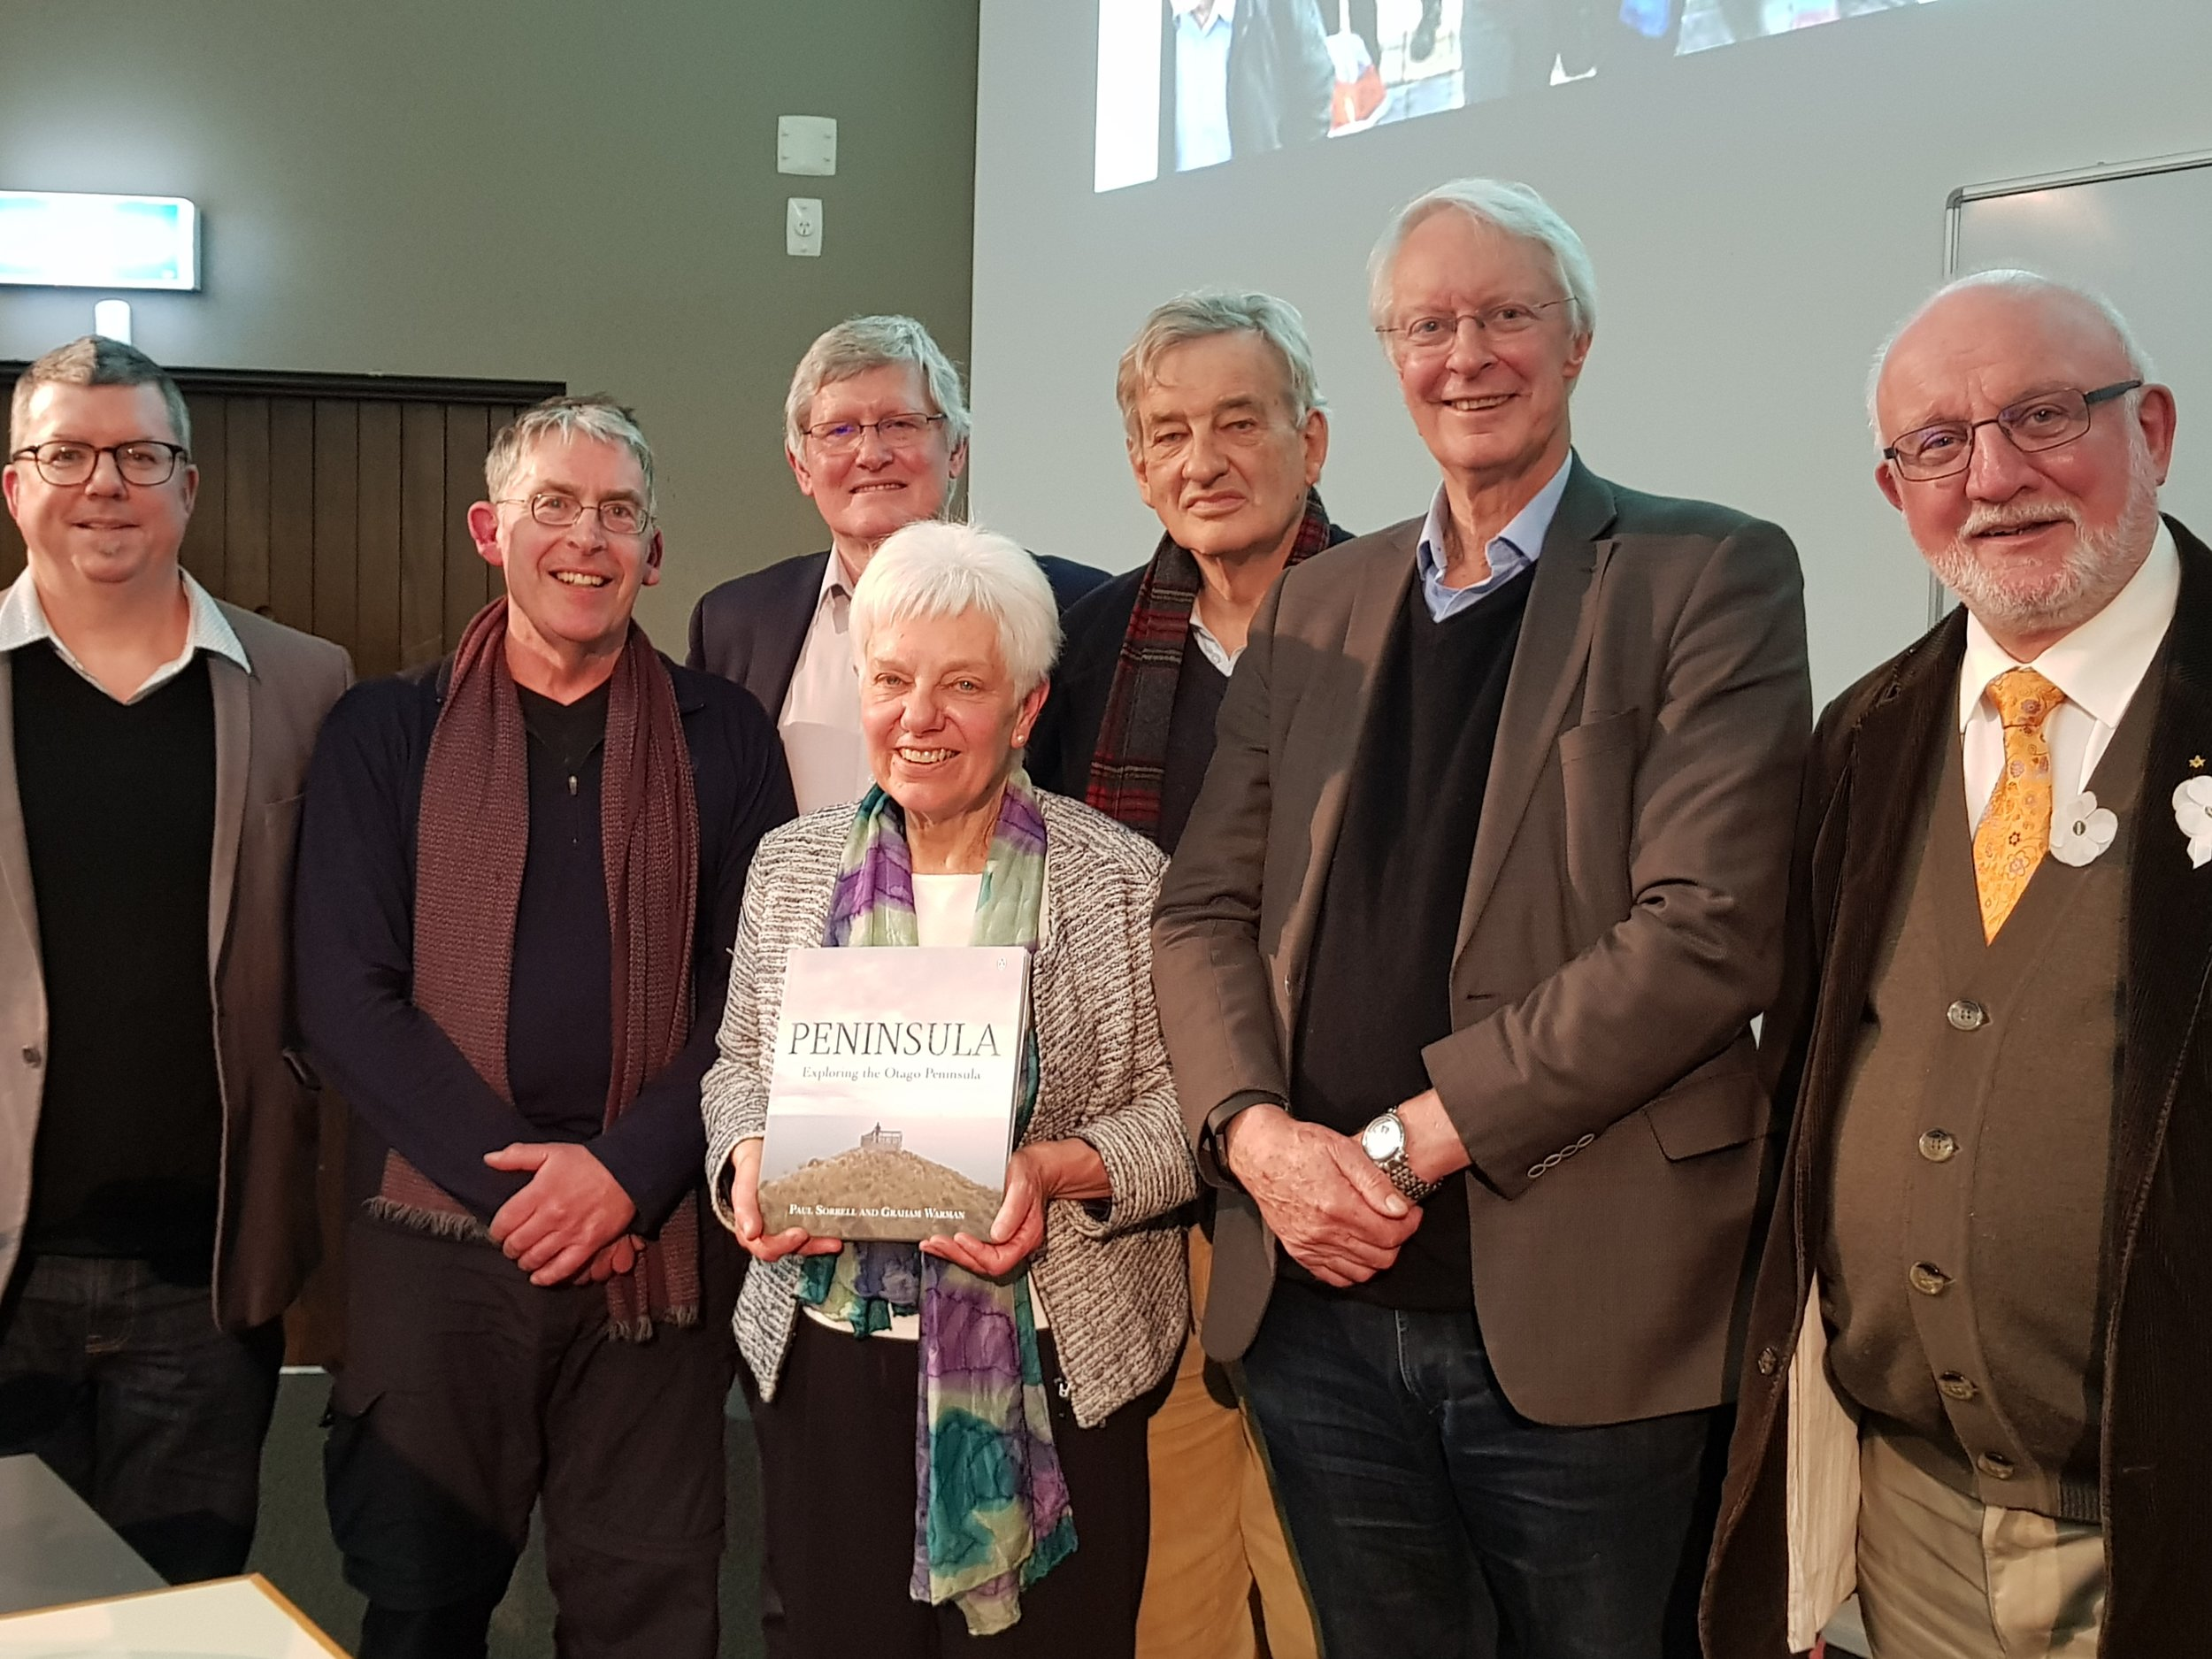 Members of the Archibald Baxter Memorial Trust with Maire Leadbeater. From left: Richard Jackson, Paul Sorrell, Tony Eyre, David Grant, Kevin Clements, Alan Jackson.